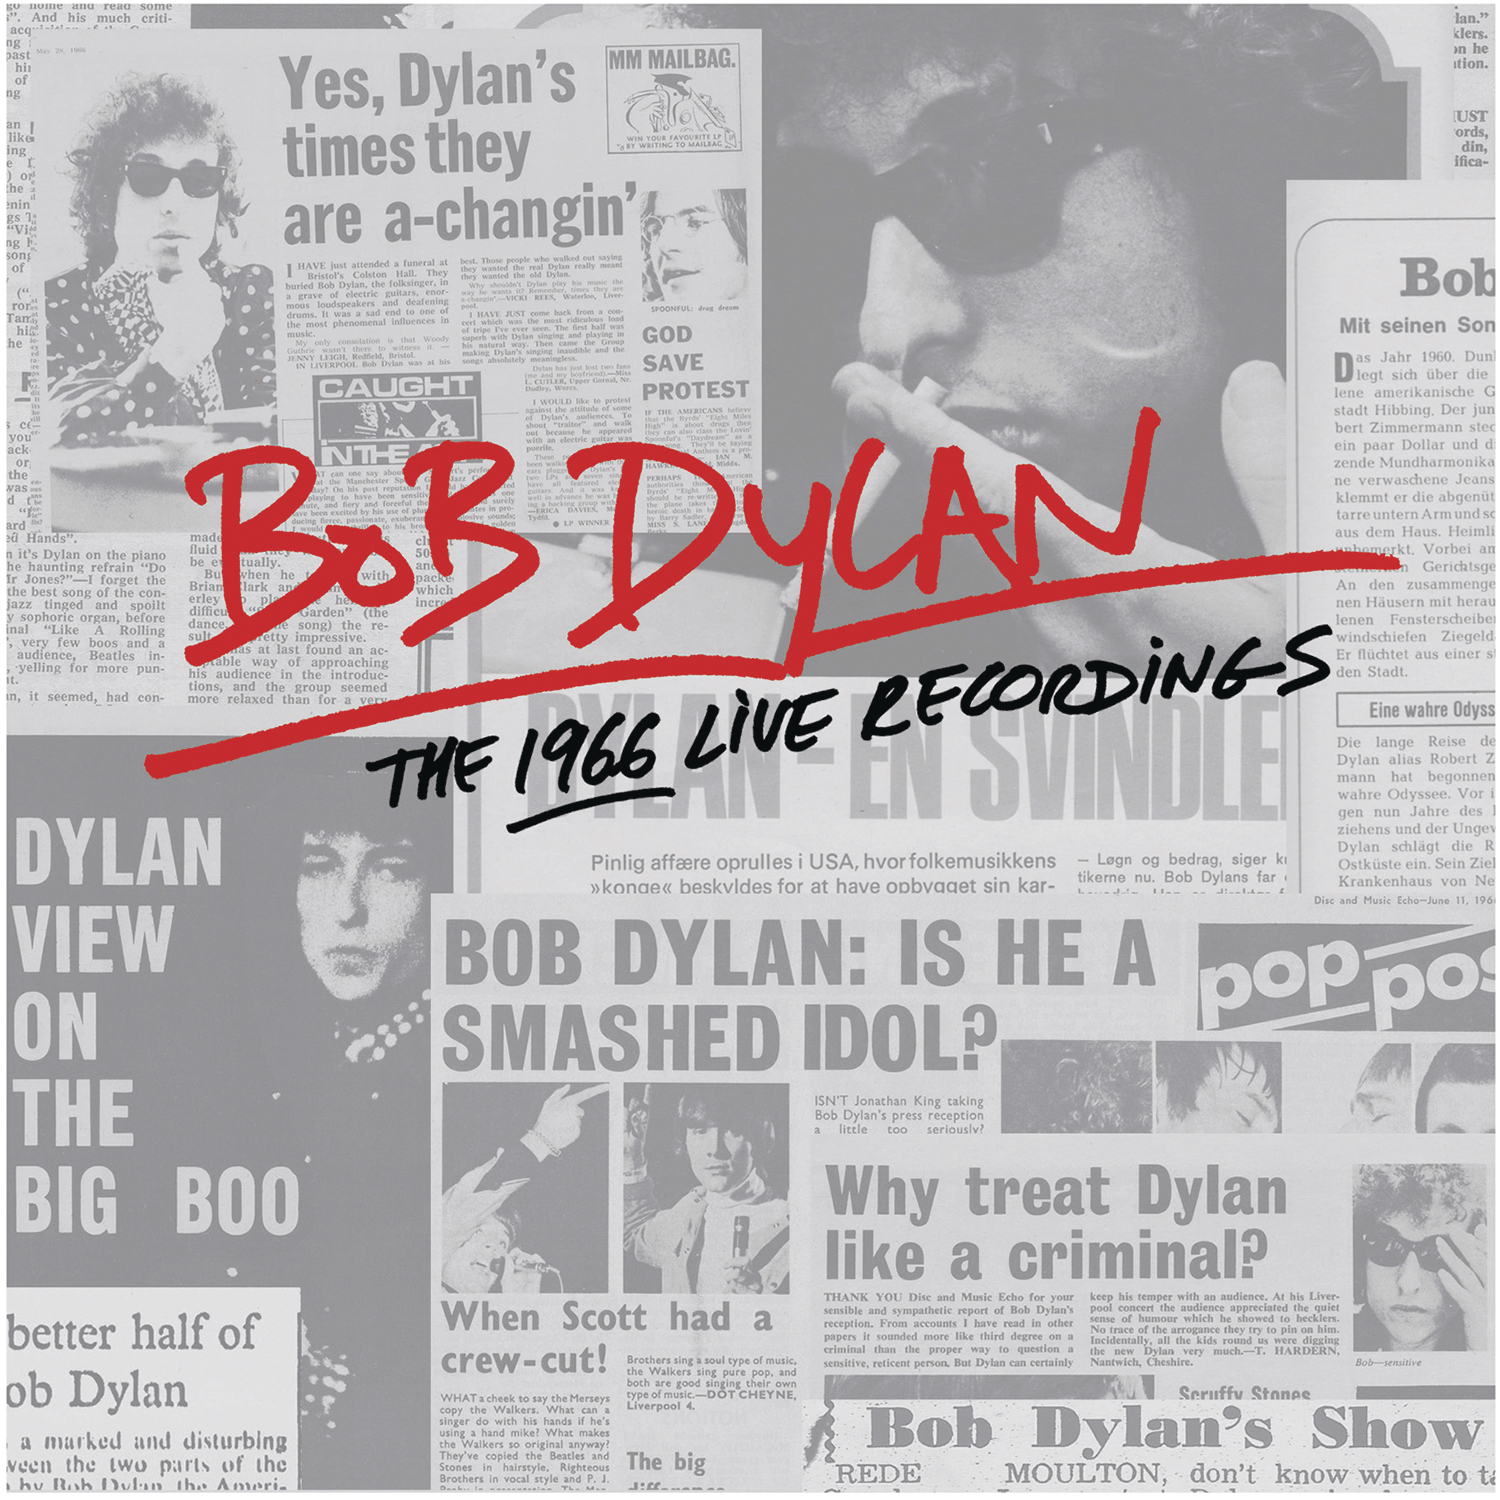 The 1966 Live Recordings